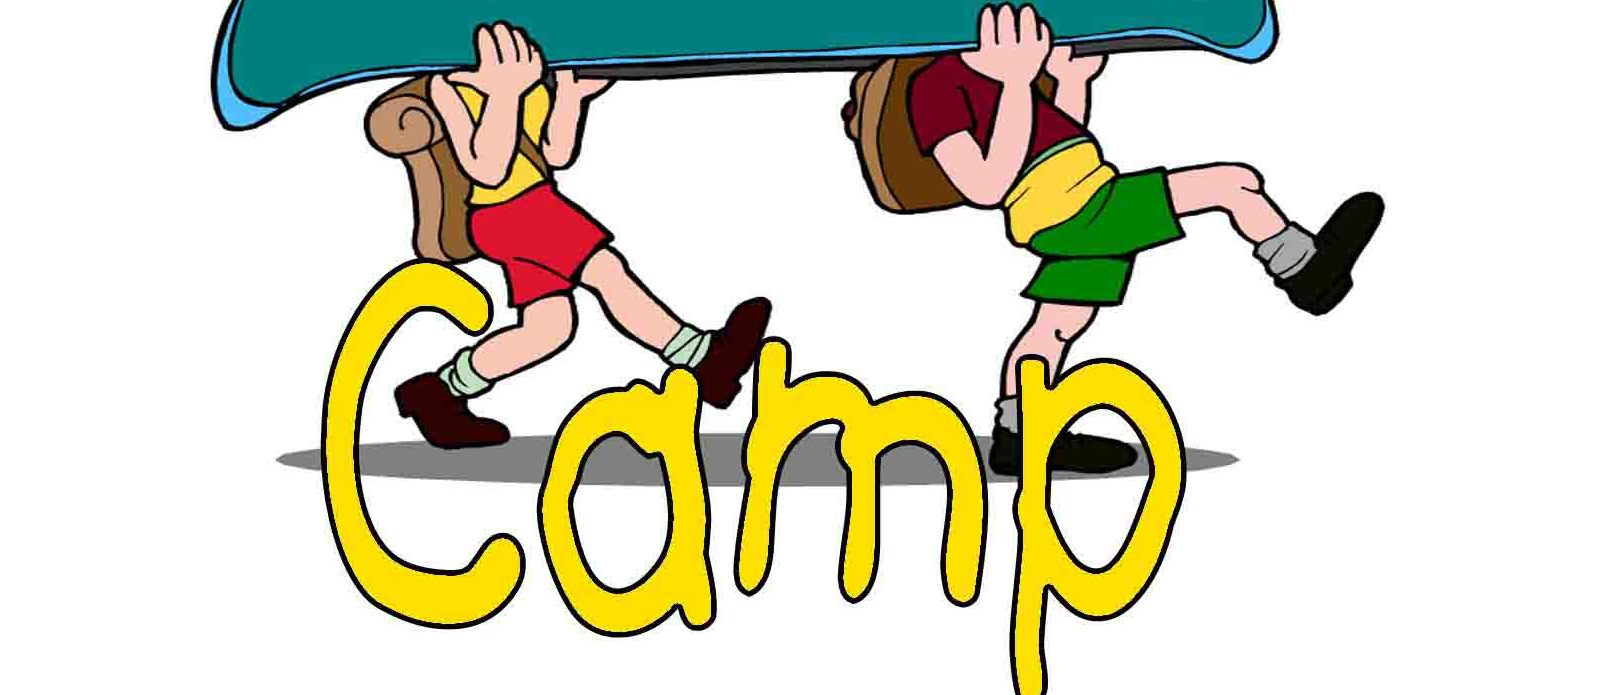 summer camp clipart at getdrawings com free for personal use rh getdrawings com